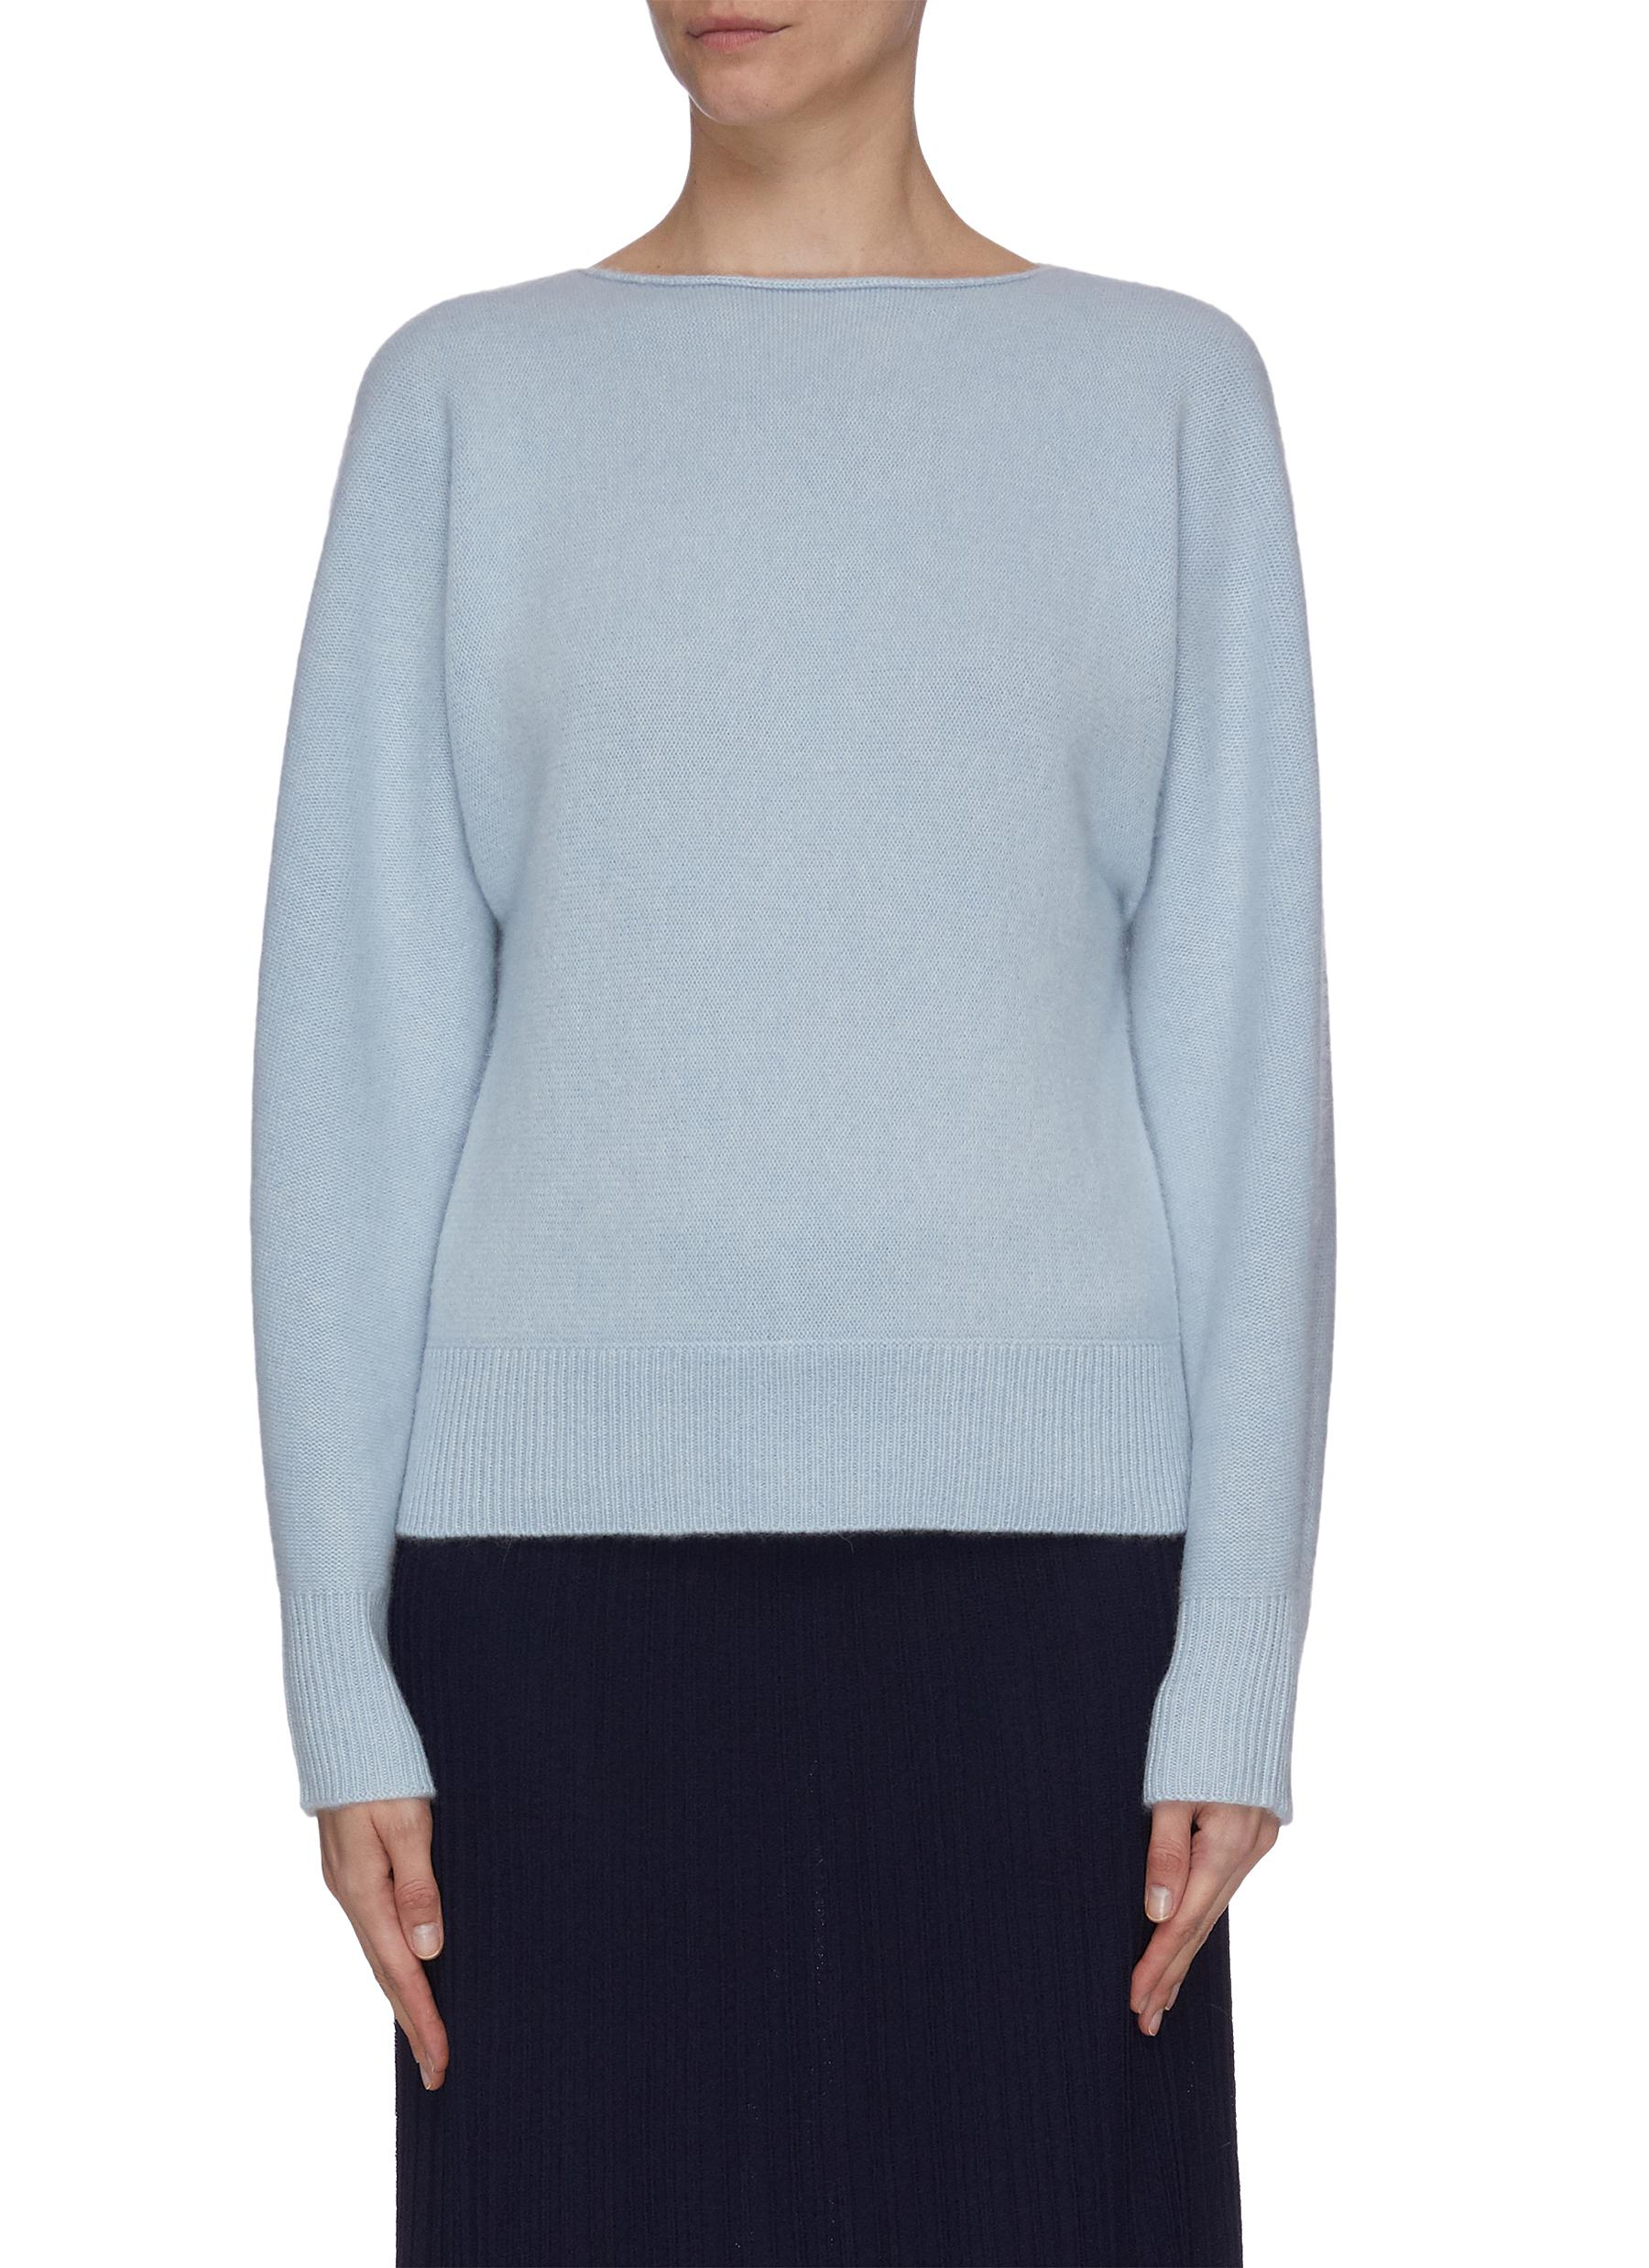 Buy Vince Knitwear 'Dolman' boatneck cashmere sweater